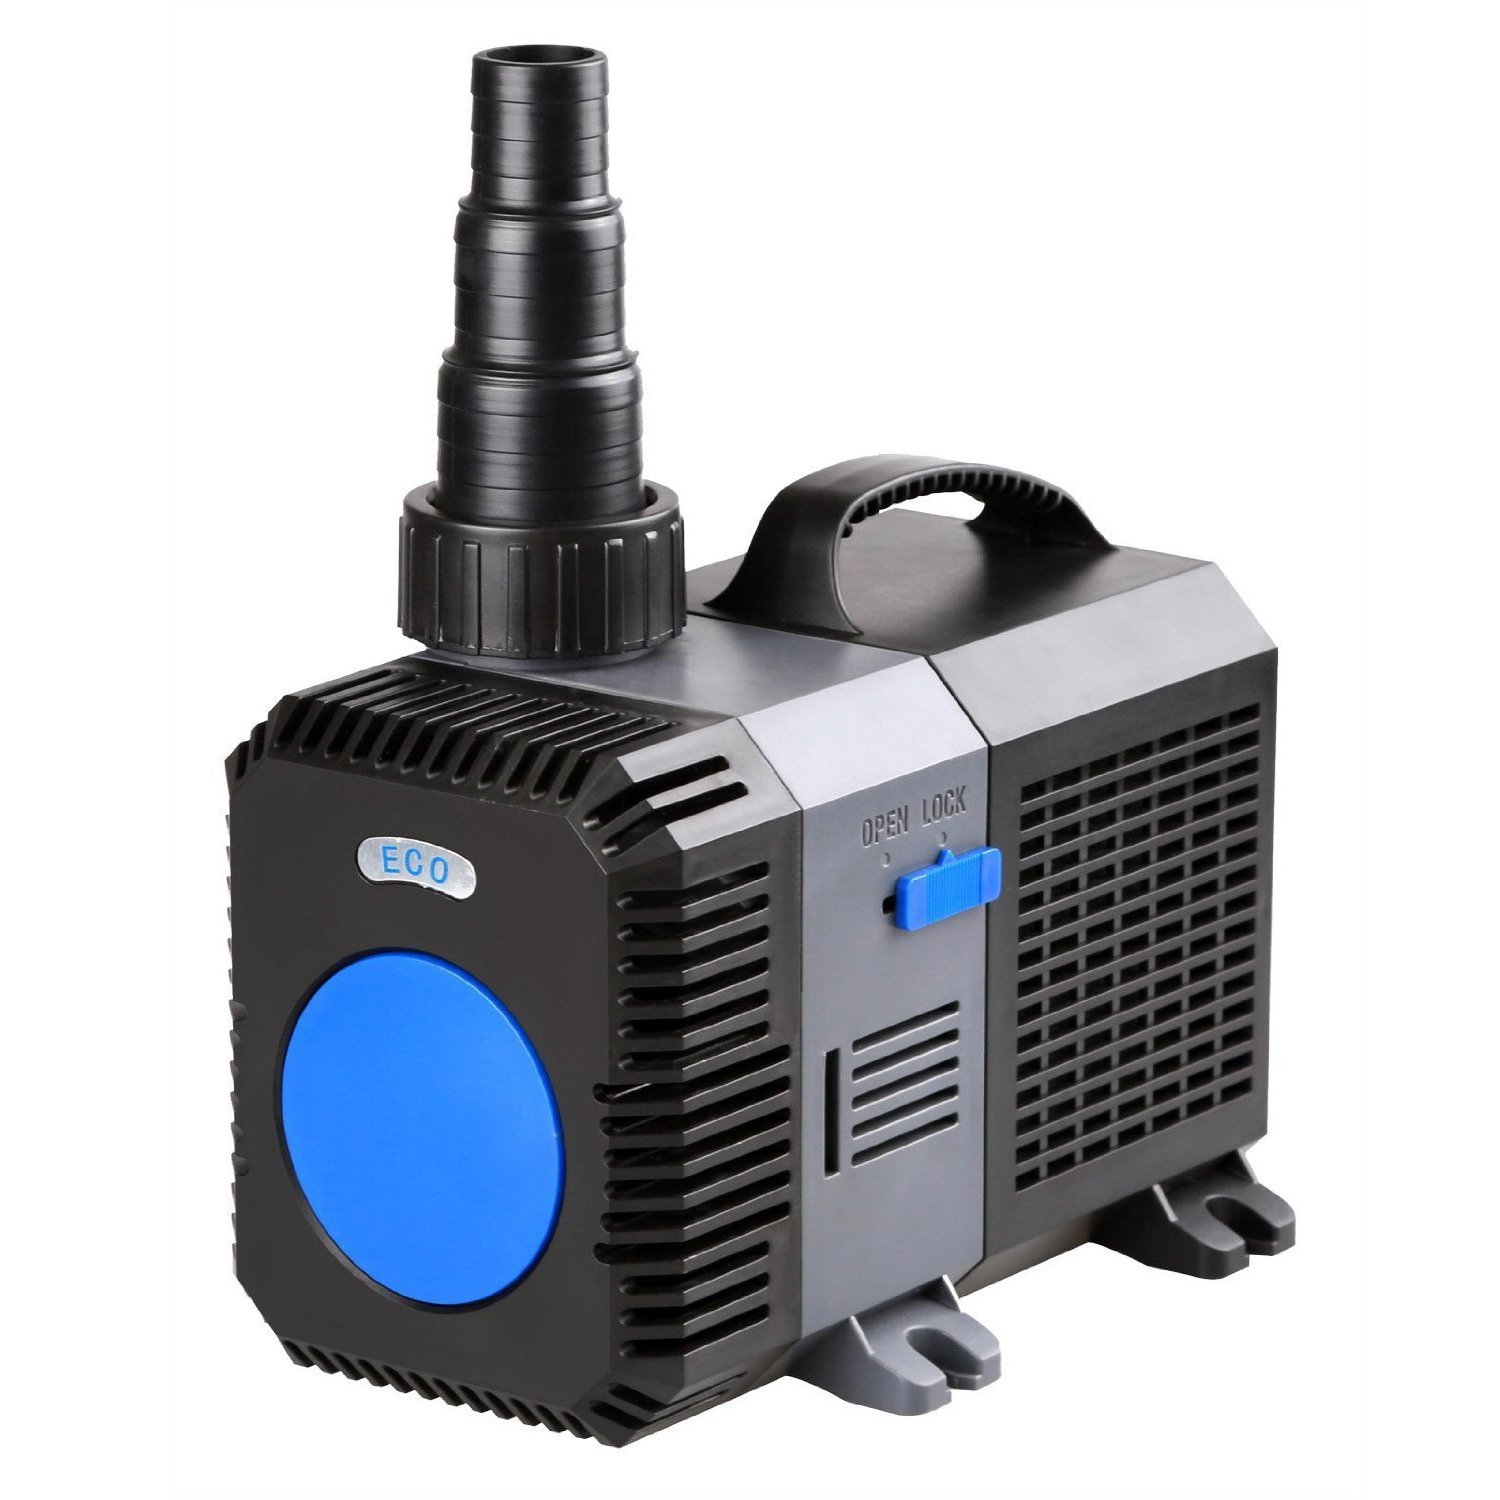 TRUPOW 4226GPH Flow Frequency Electric Inline Garden Submersible Pond Filter Pump for Fish Tank Fountain Aquarium Waterfall Koi Salt Fresh Water by TRUPOW